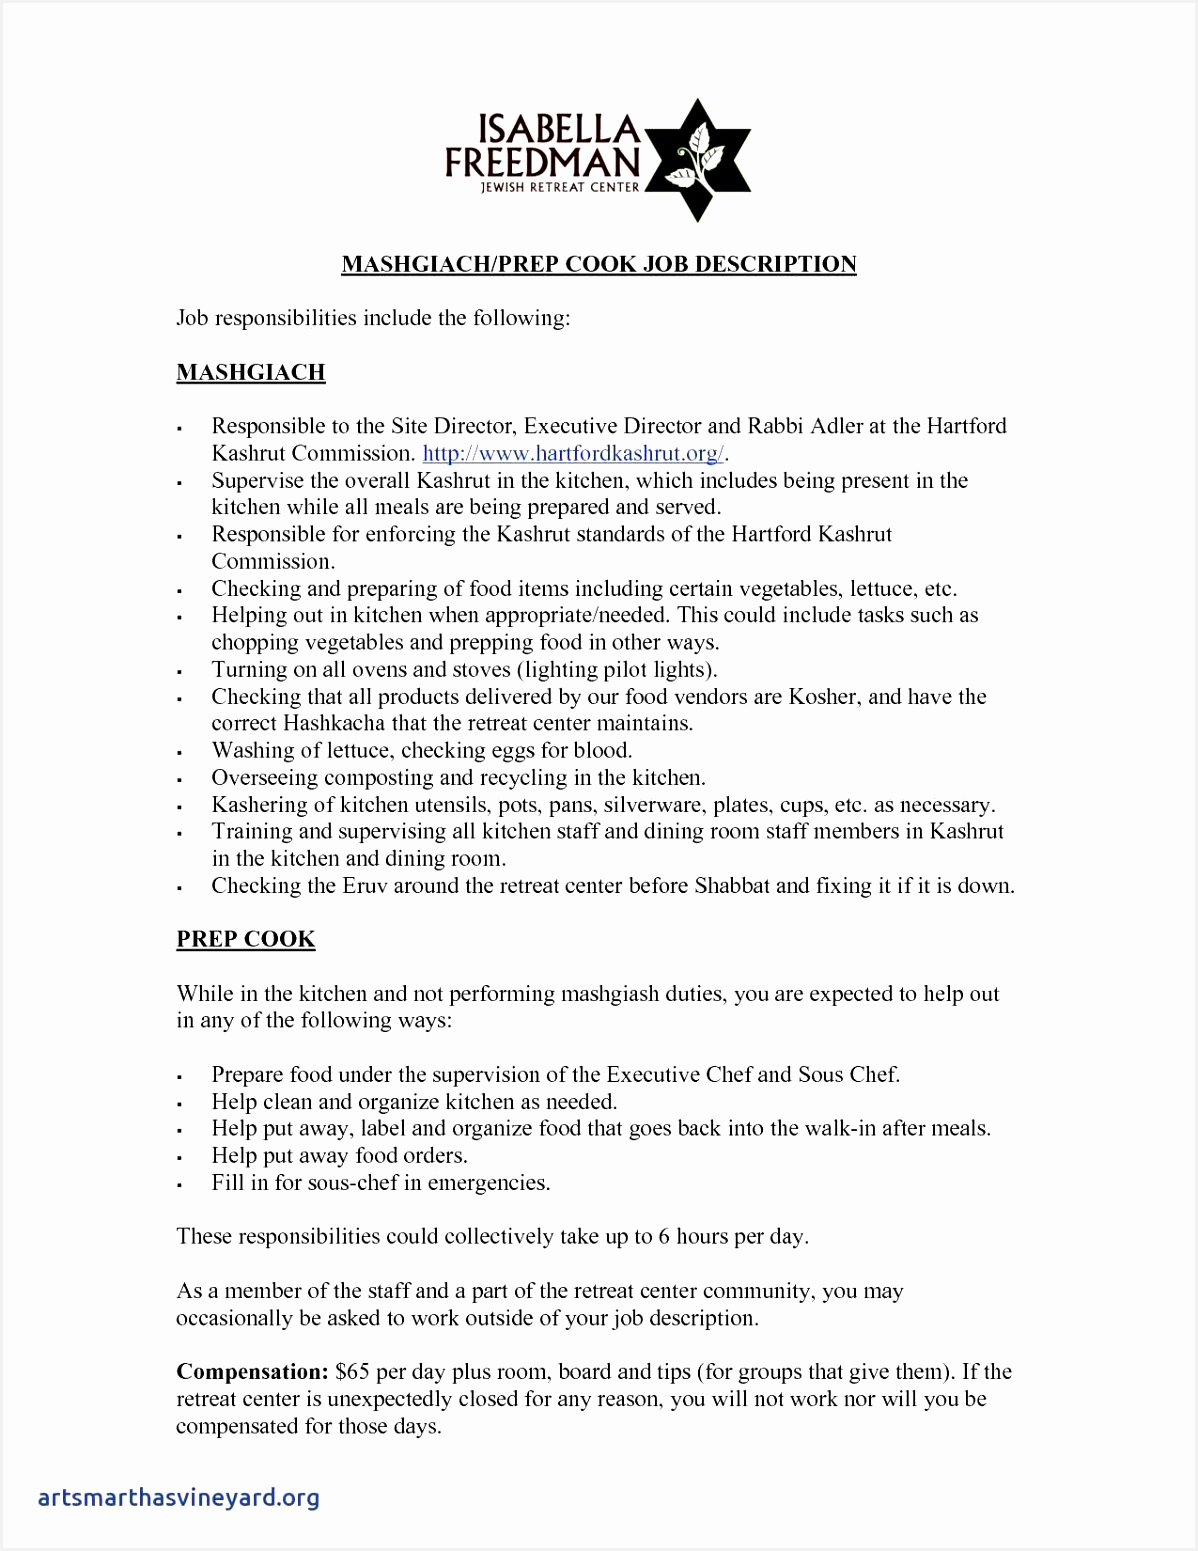 What to Put In A Resume Cover Letter C7mkg Inspirational Cover Letter Template Doc Collection Of What to Put In A Resume Cover Letter Vghgi Unique √ 34 Inspirational Good Way to Start A Cover Letter